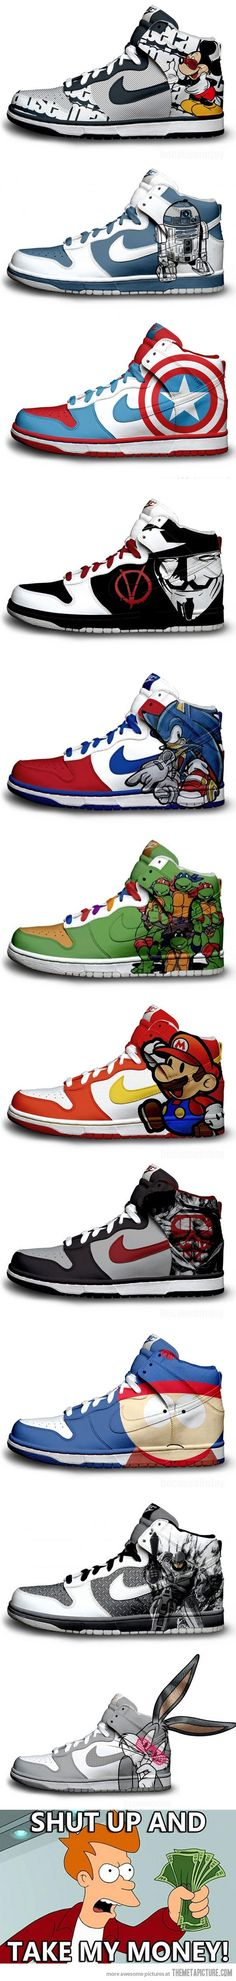 High Tops for Men - Click on image to visit www.pooz.com